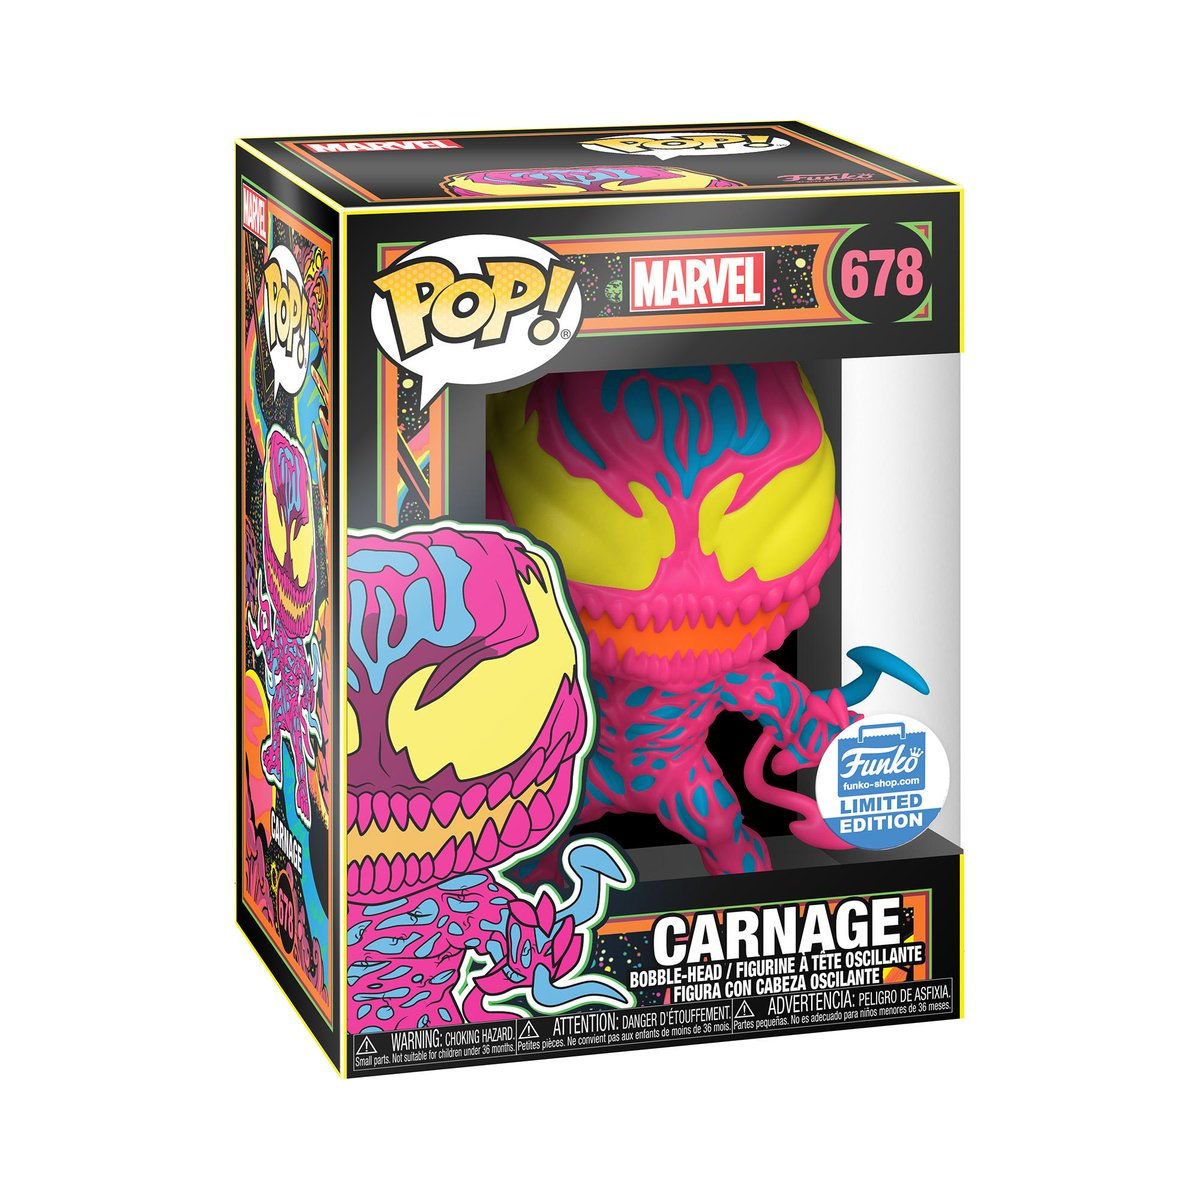 RT & follow @OriginalFunko for the chance to WIN this Funko exclusive Carnage Blacklight Pop! #Funko #Funkogiveaway #Marvel #Carnage